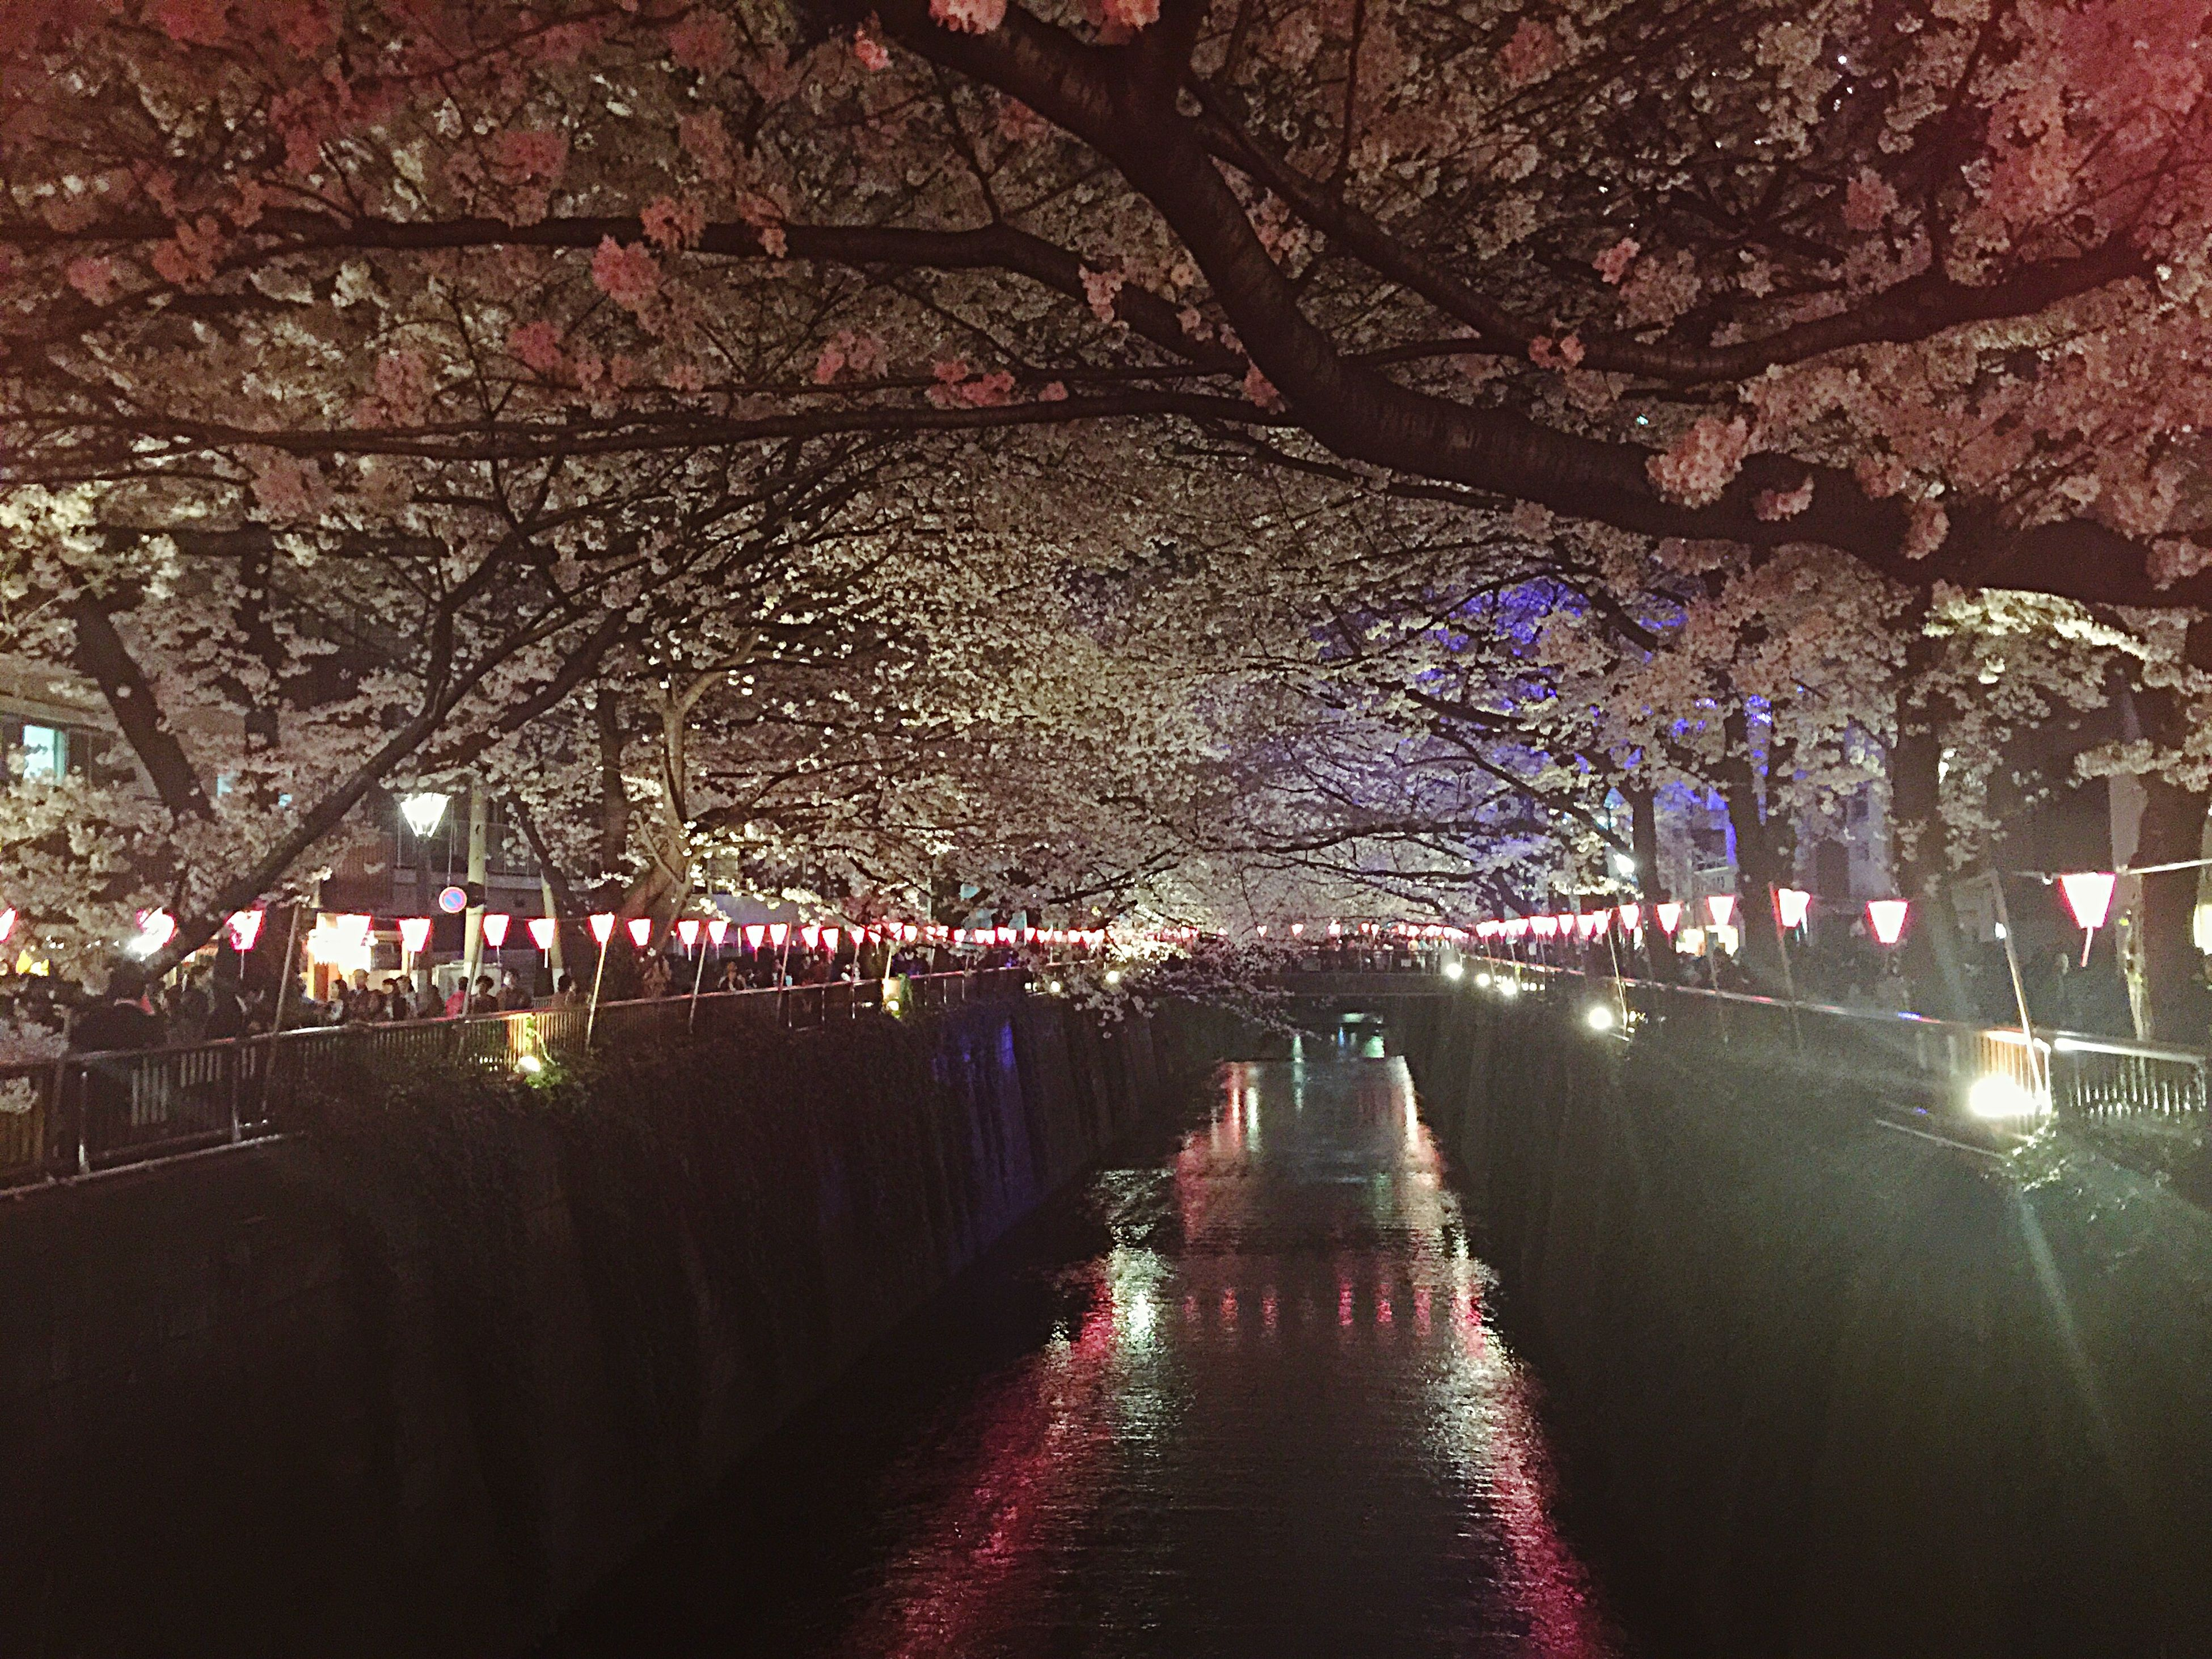 tree, the way forward, illuminated, night, diminishing perspective, large group of people, park - man made space, street, lighting equipment, footpath, water, treelined, outdoors, incidental people, nature, road, reflection, vanishing point, branch